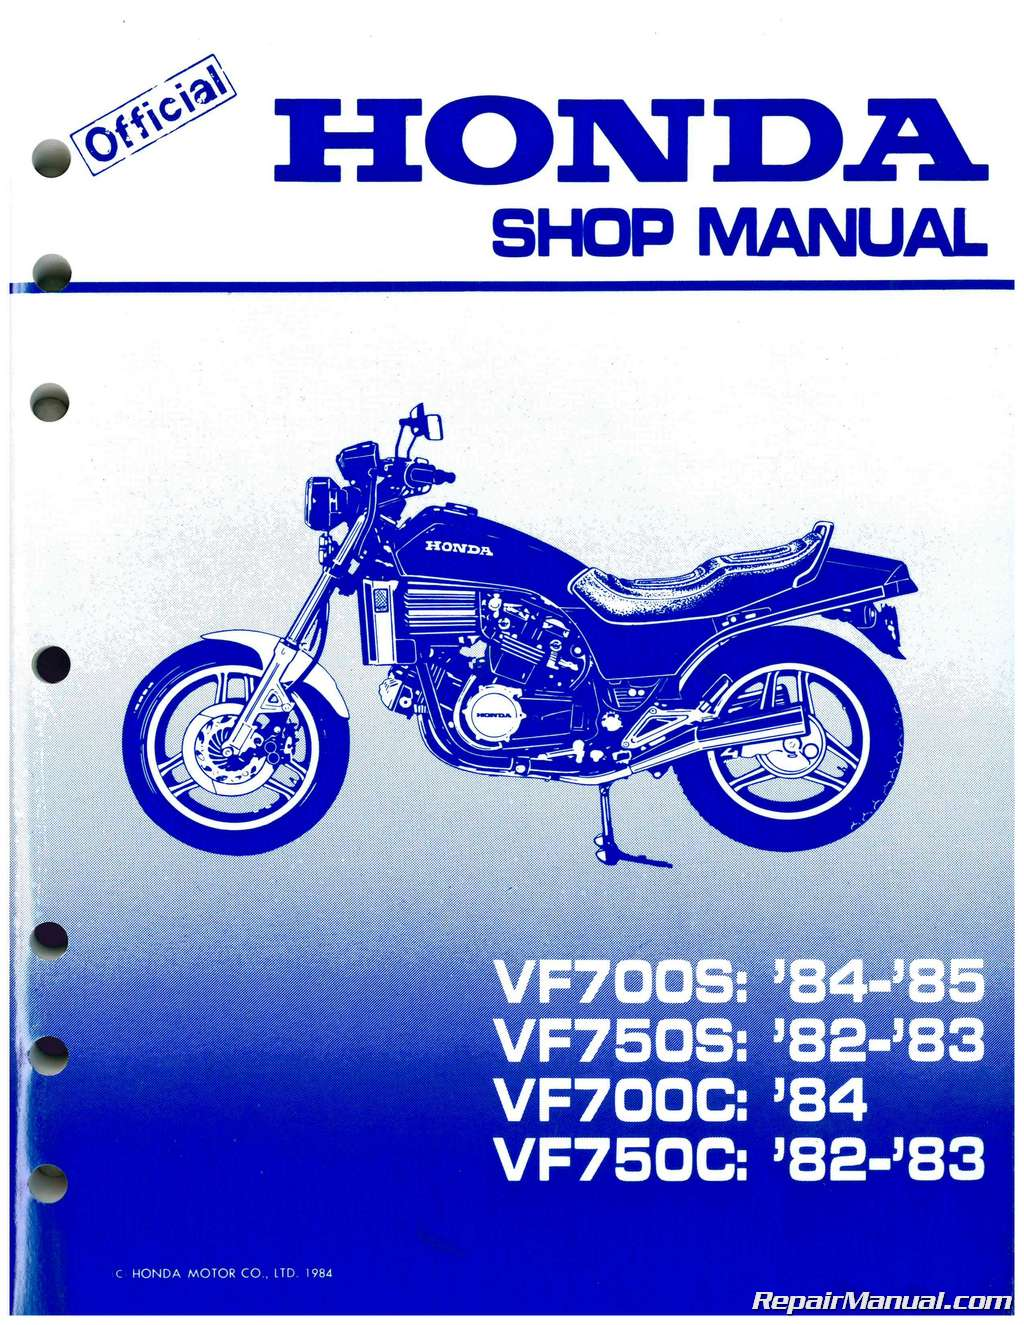 Honda Nighthawk 750 Wiring Diagram Page 4 And 1985 1982 Vf700c Magna Vf750s V45 Sabre Motorcycle Service 1984 Big Red